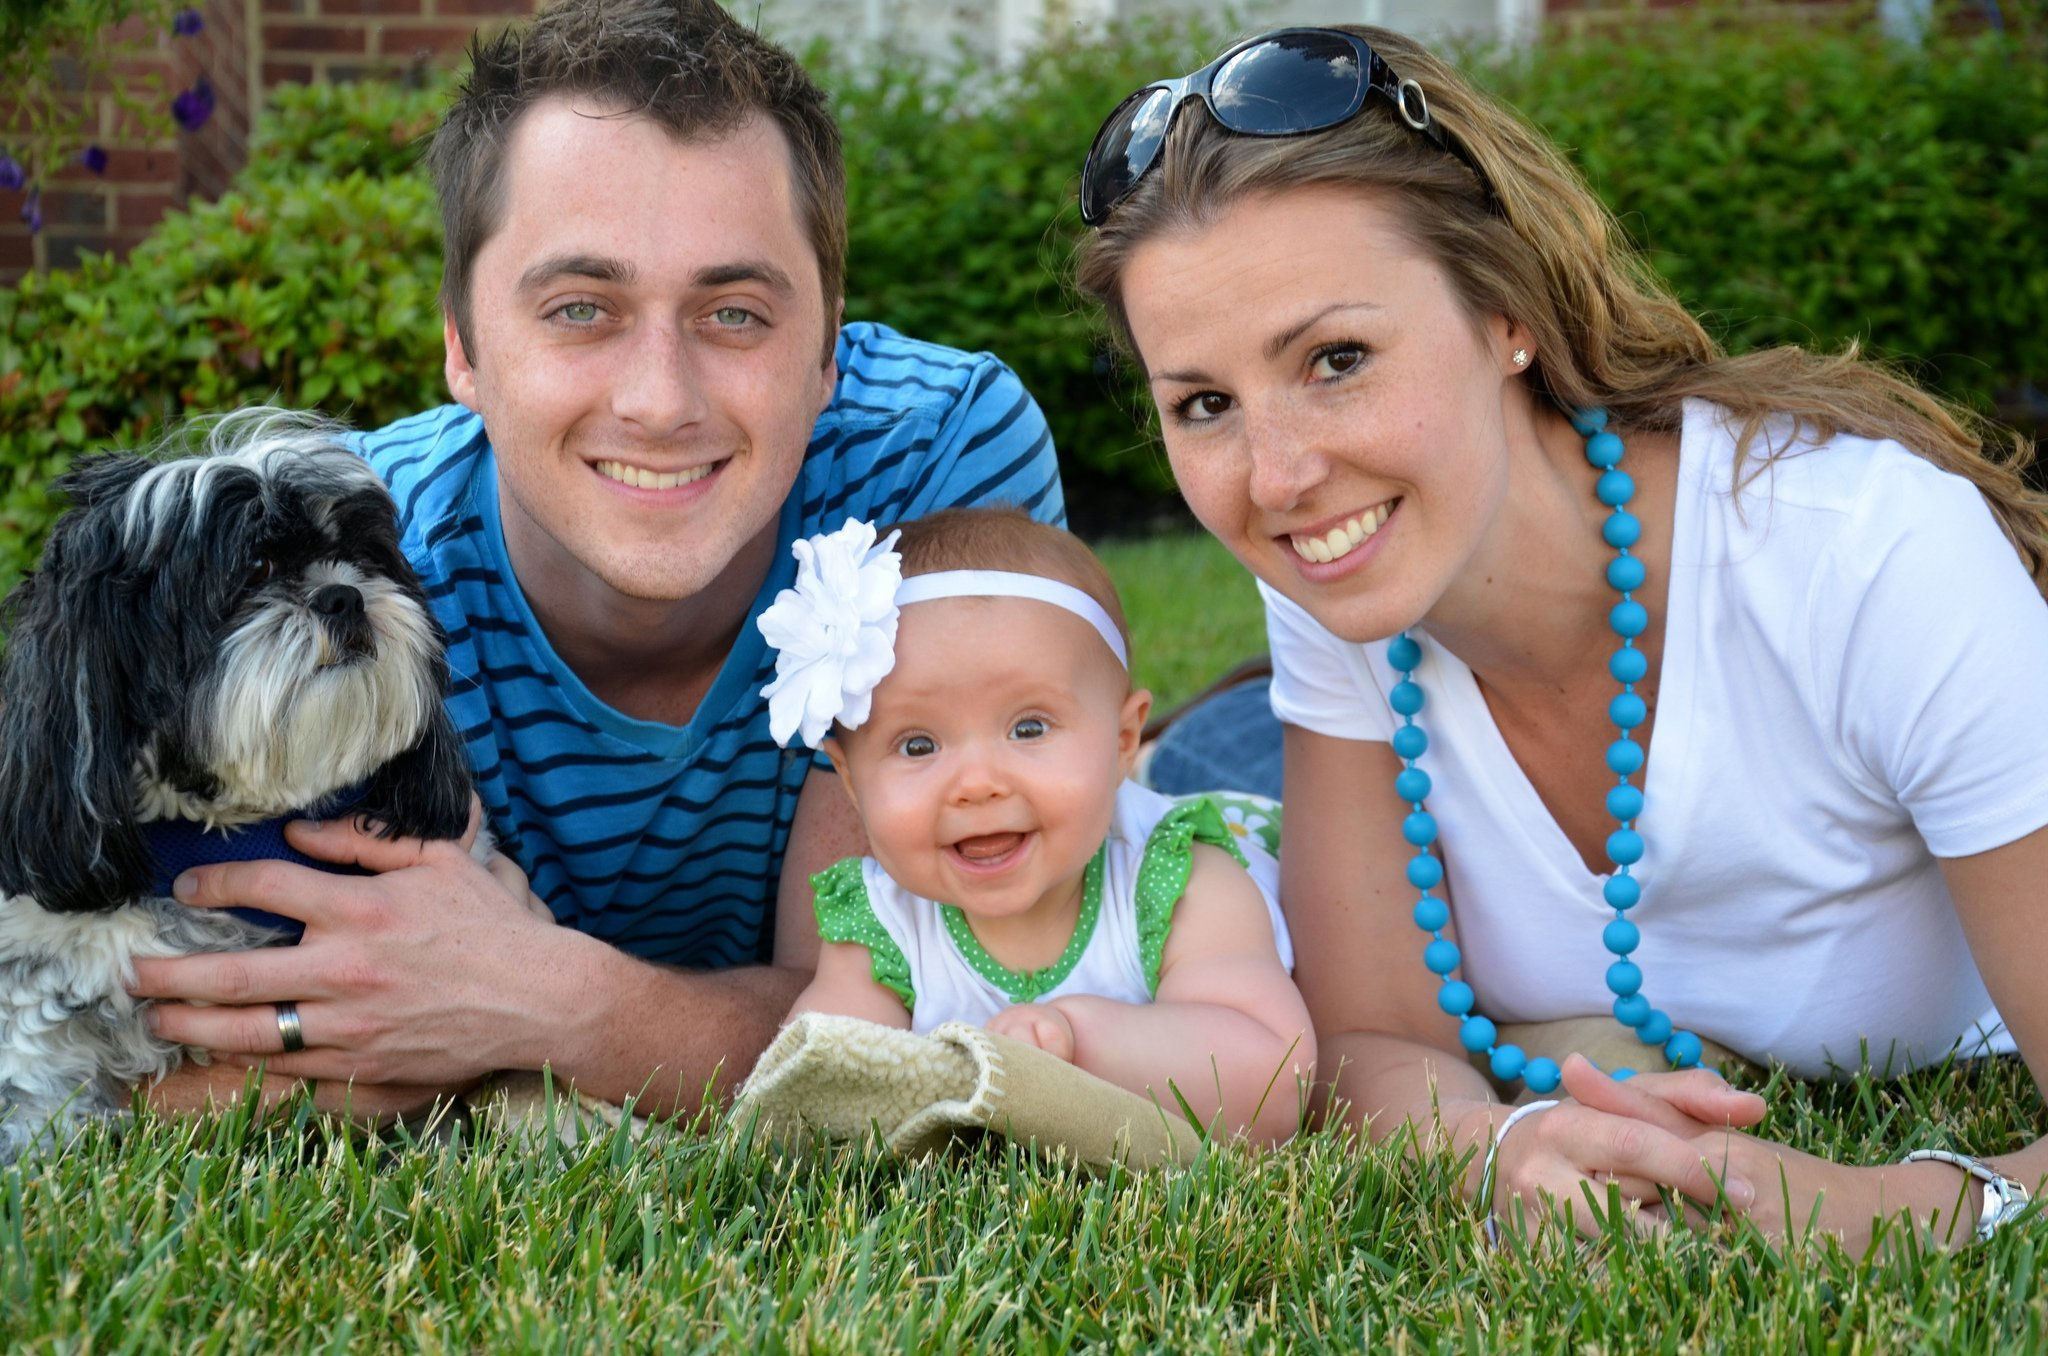 Life Insurance: Are You Covered?